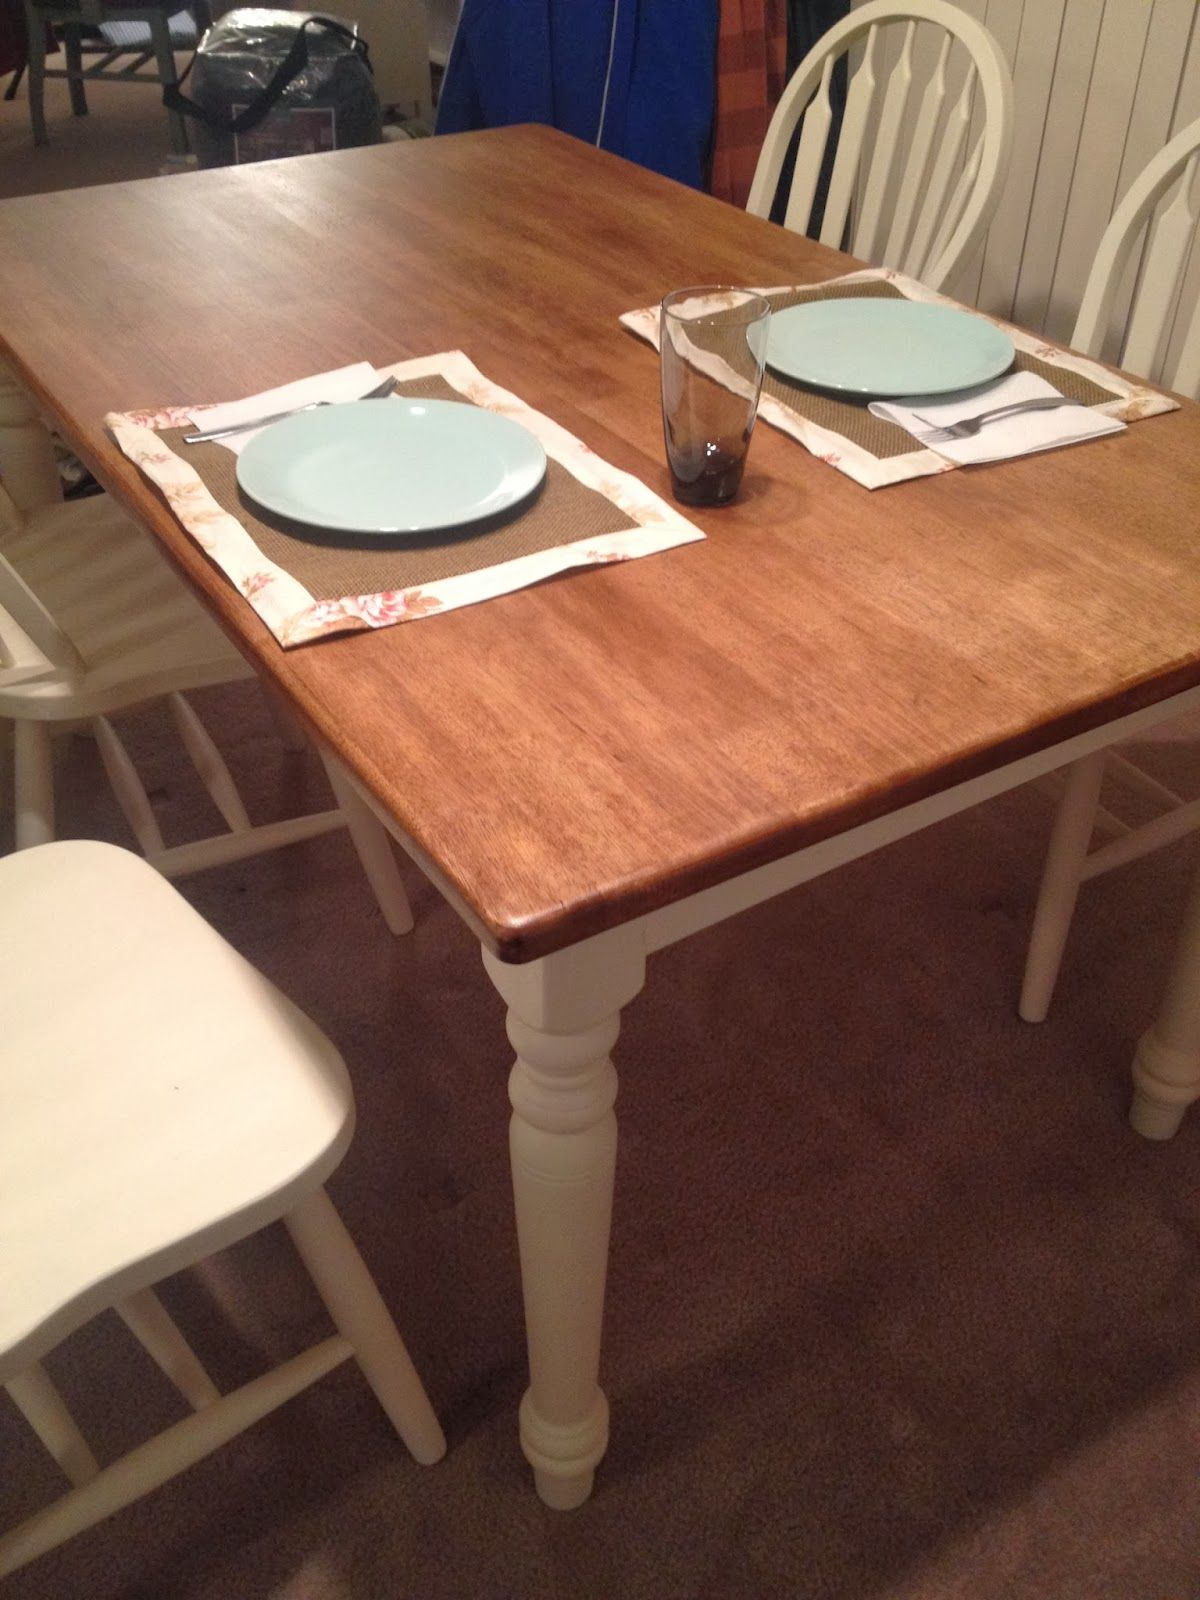 Charmant Annie Sloan Dark Wax To Stain Tabletop. The Daily Debut